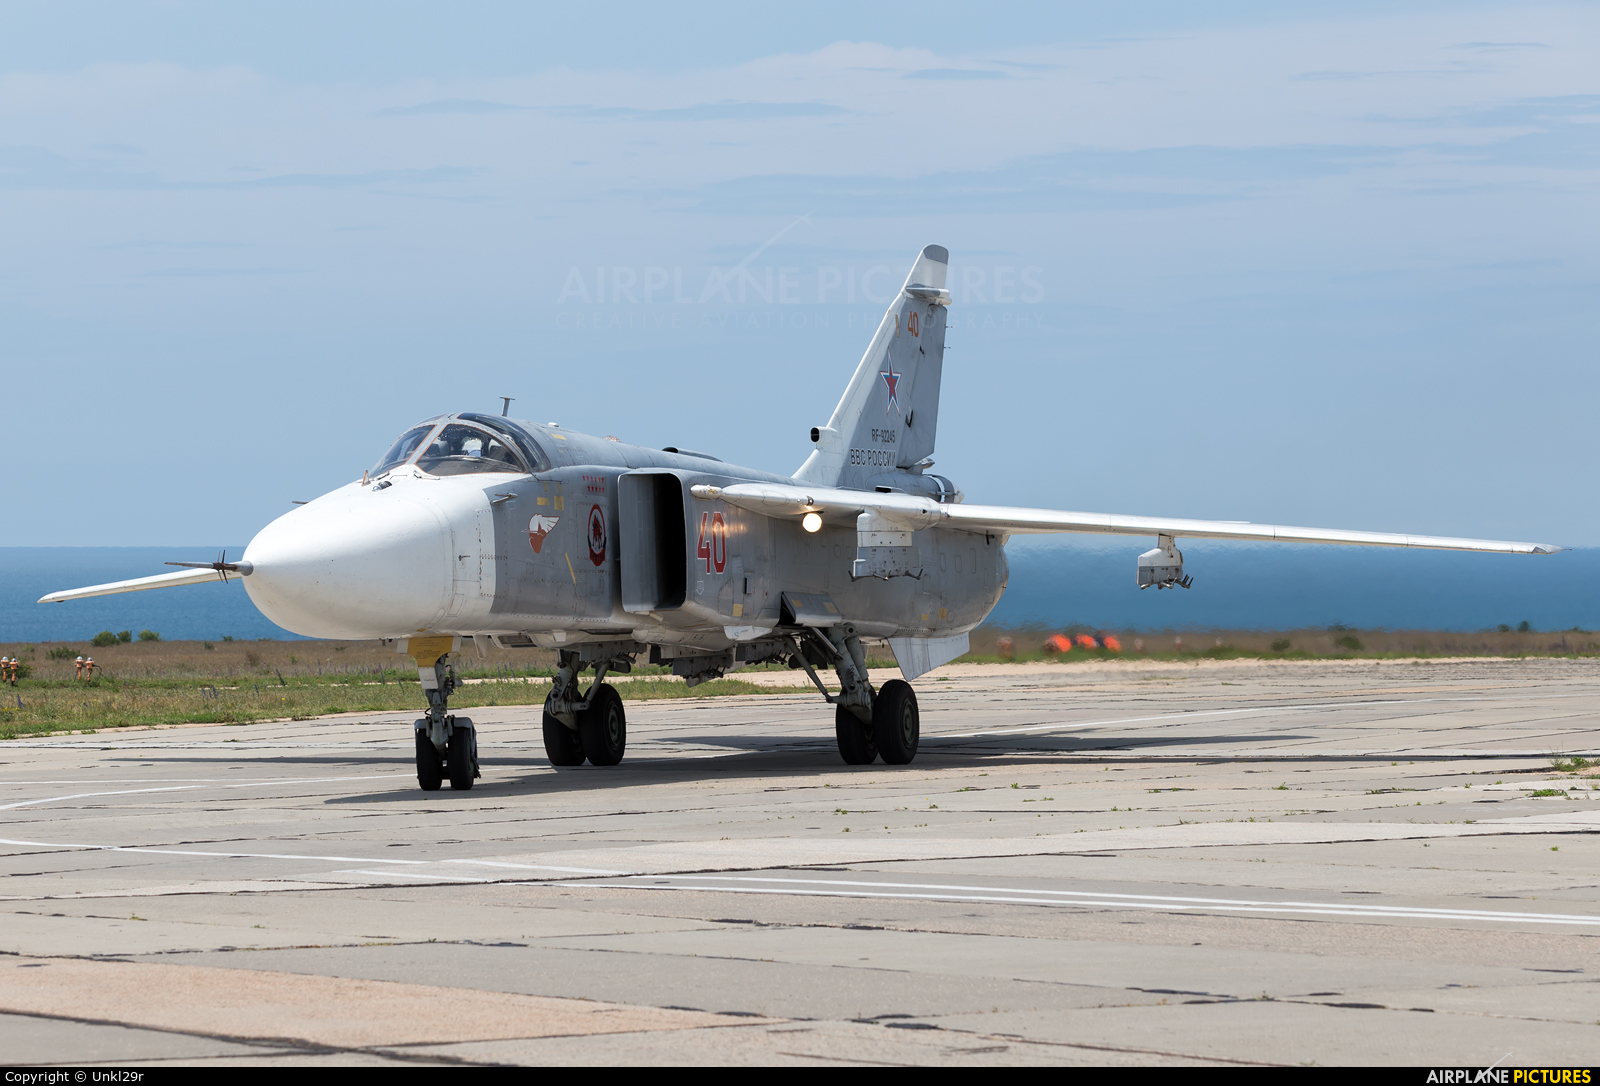 Russia - Air Force RF-92245 aircraft at Undisclosed Location